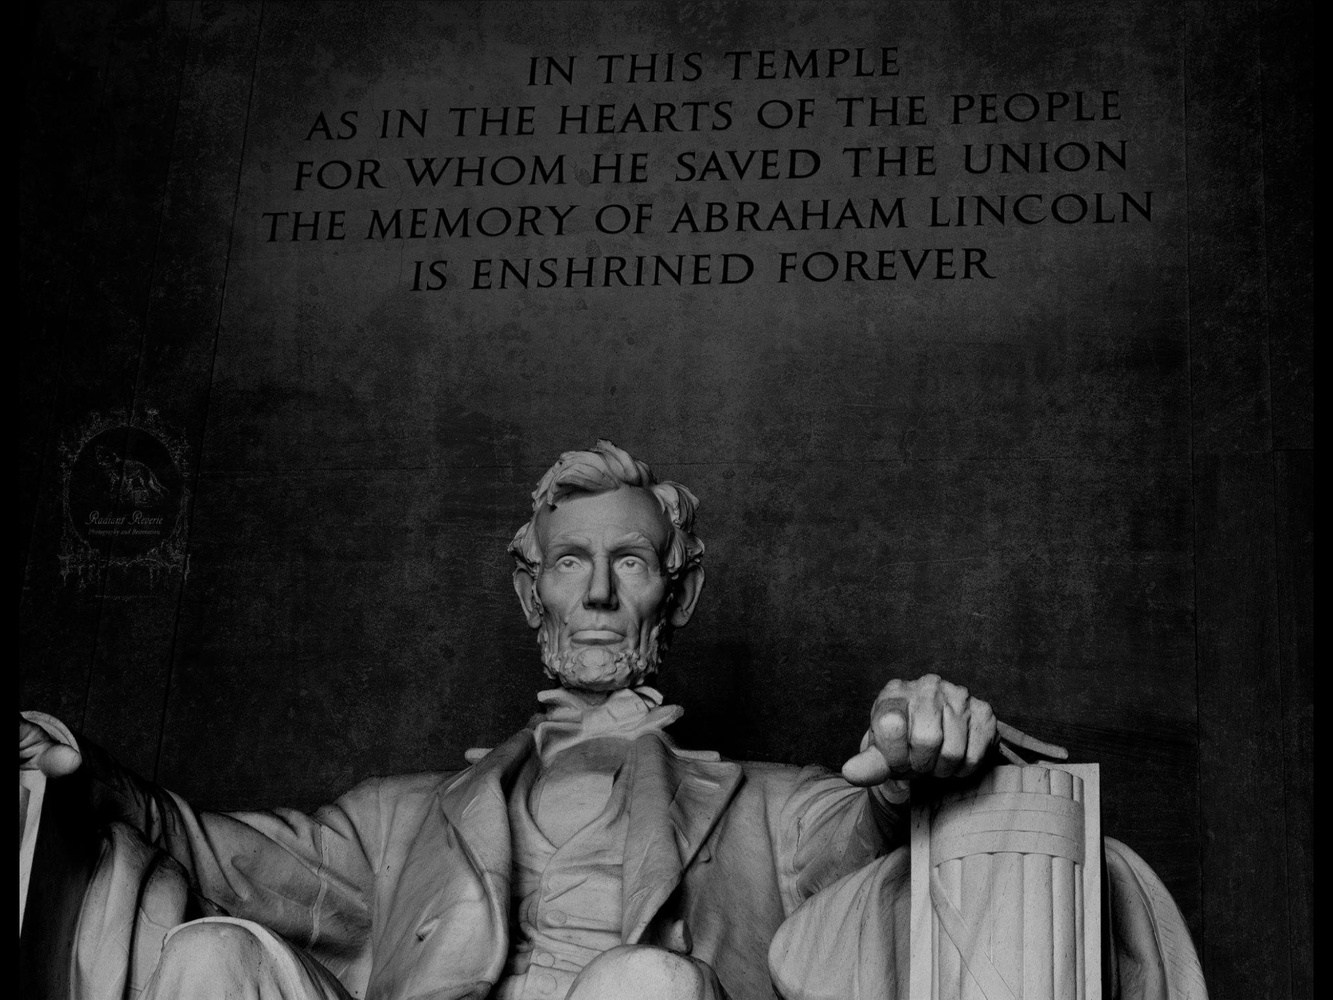 Lincoln Memorial by Audree Rodabaugh